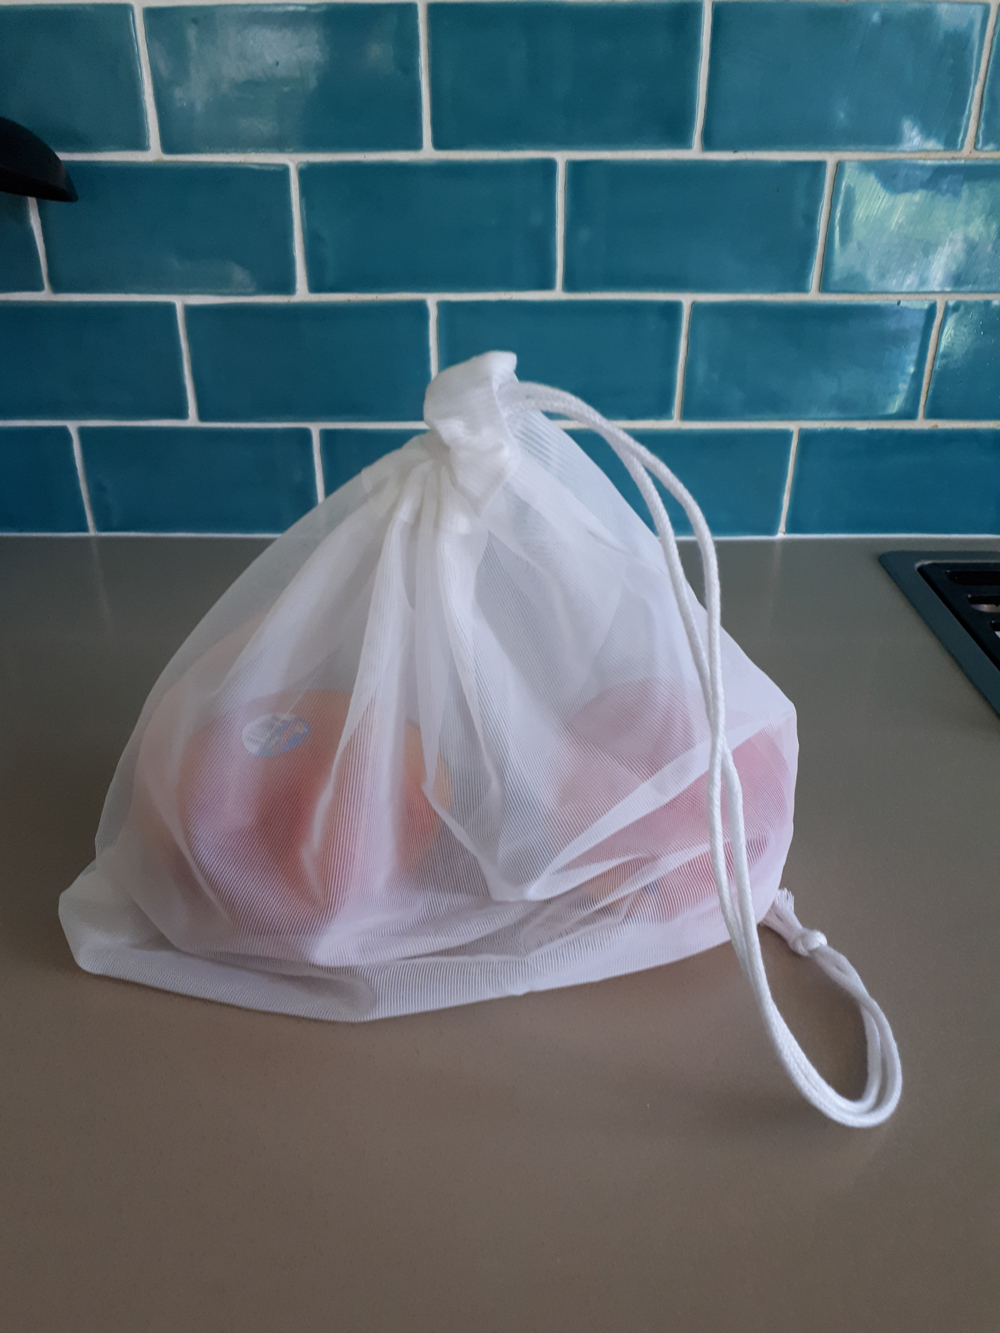 Tutorial – How to make Reusable Produce Bags